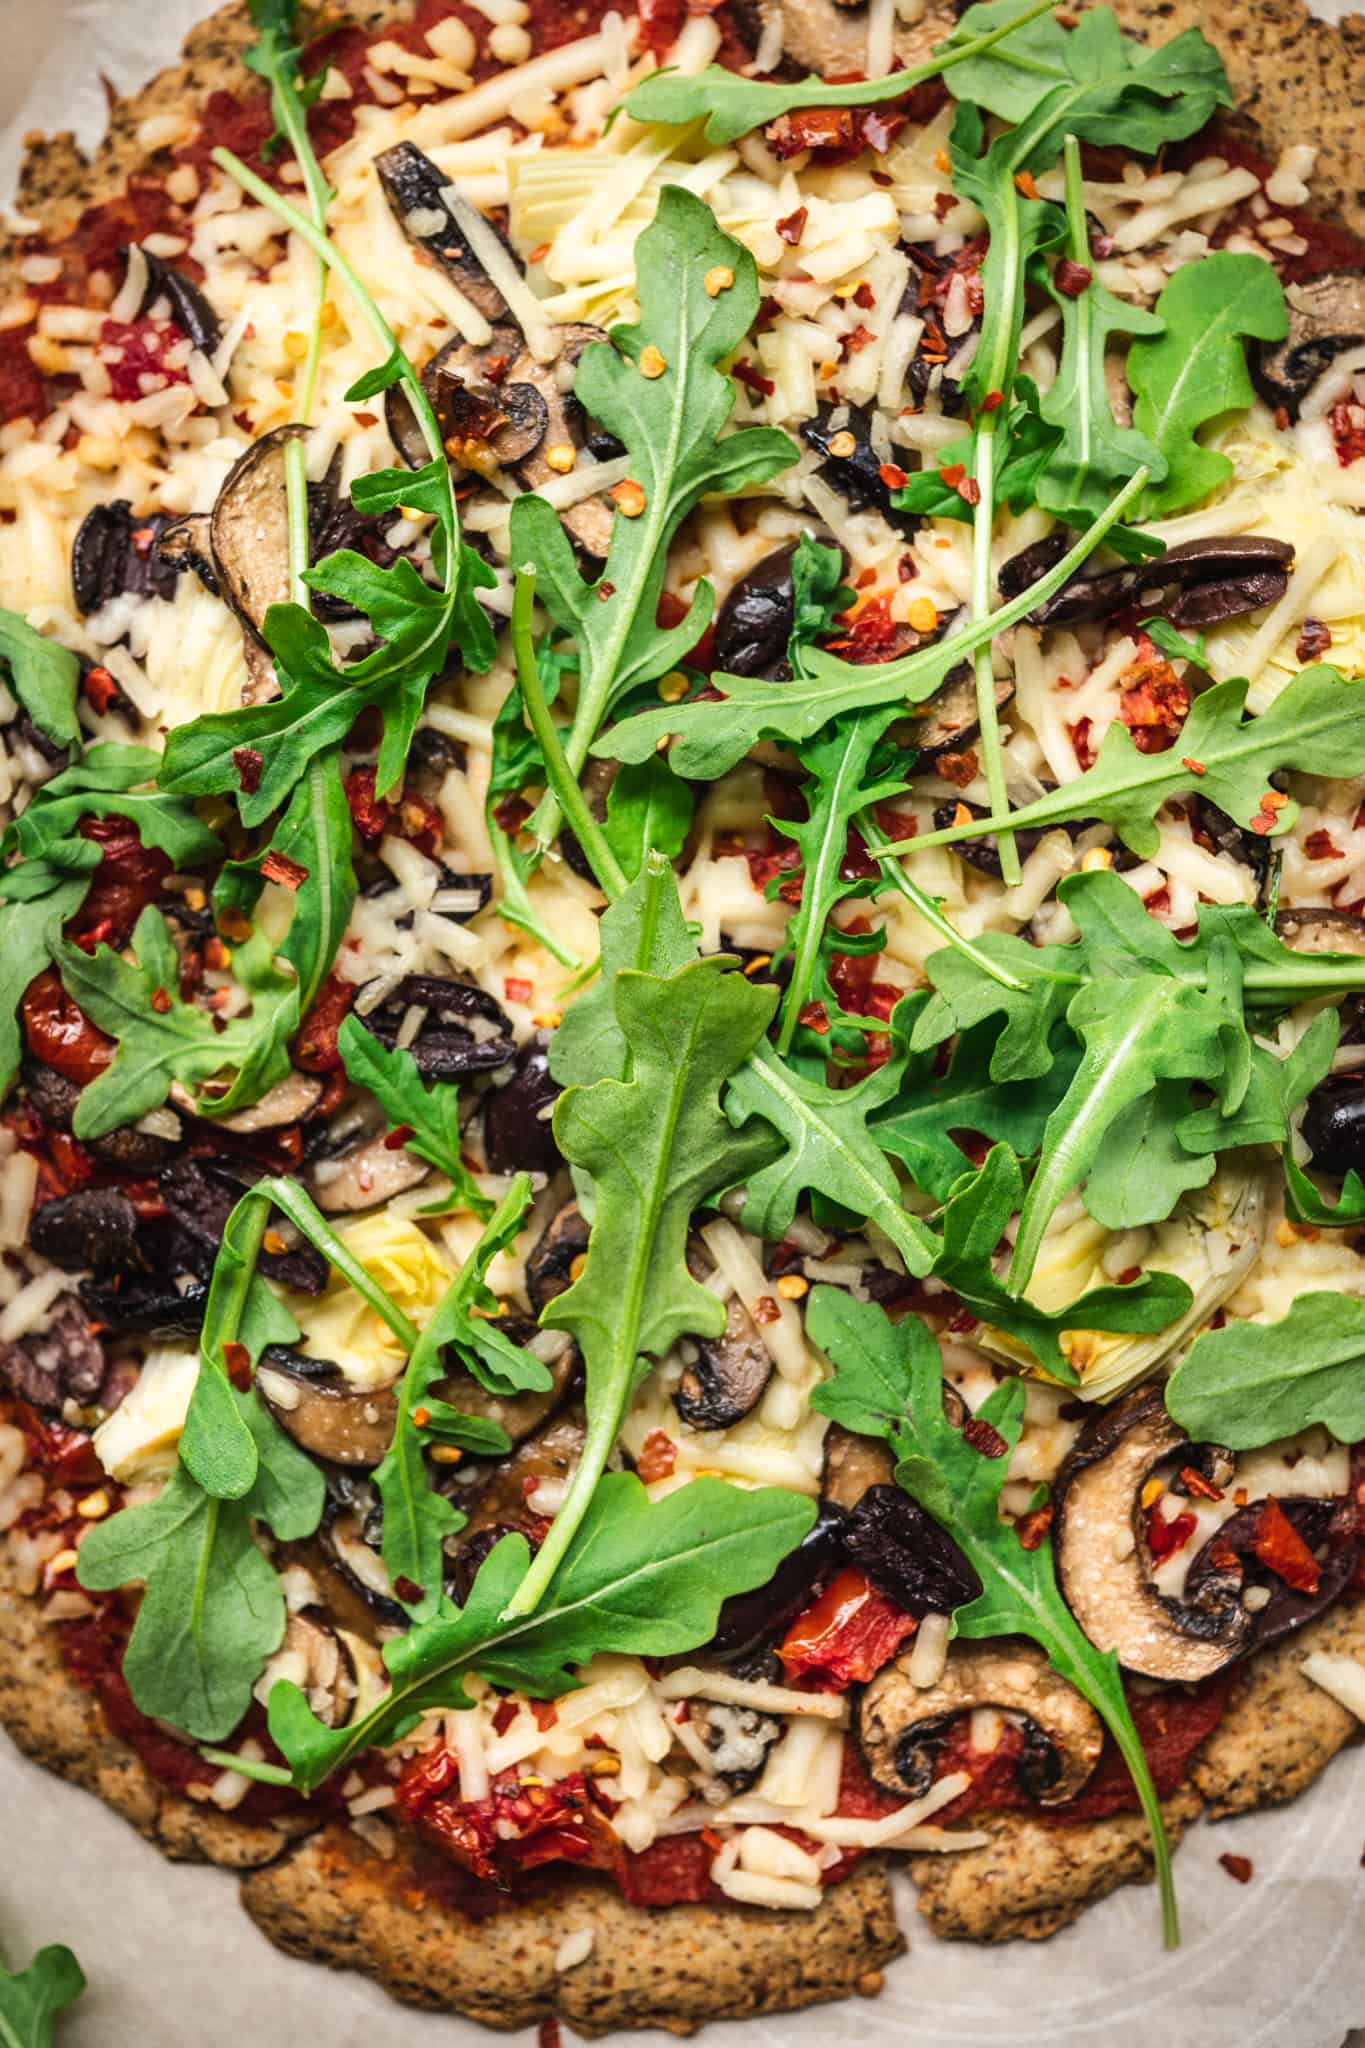 Close up view of pizza with mushrooms, arugula, artichokes and olives